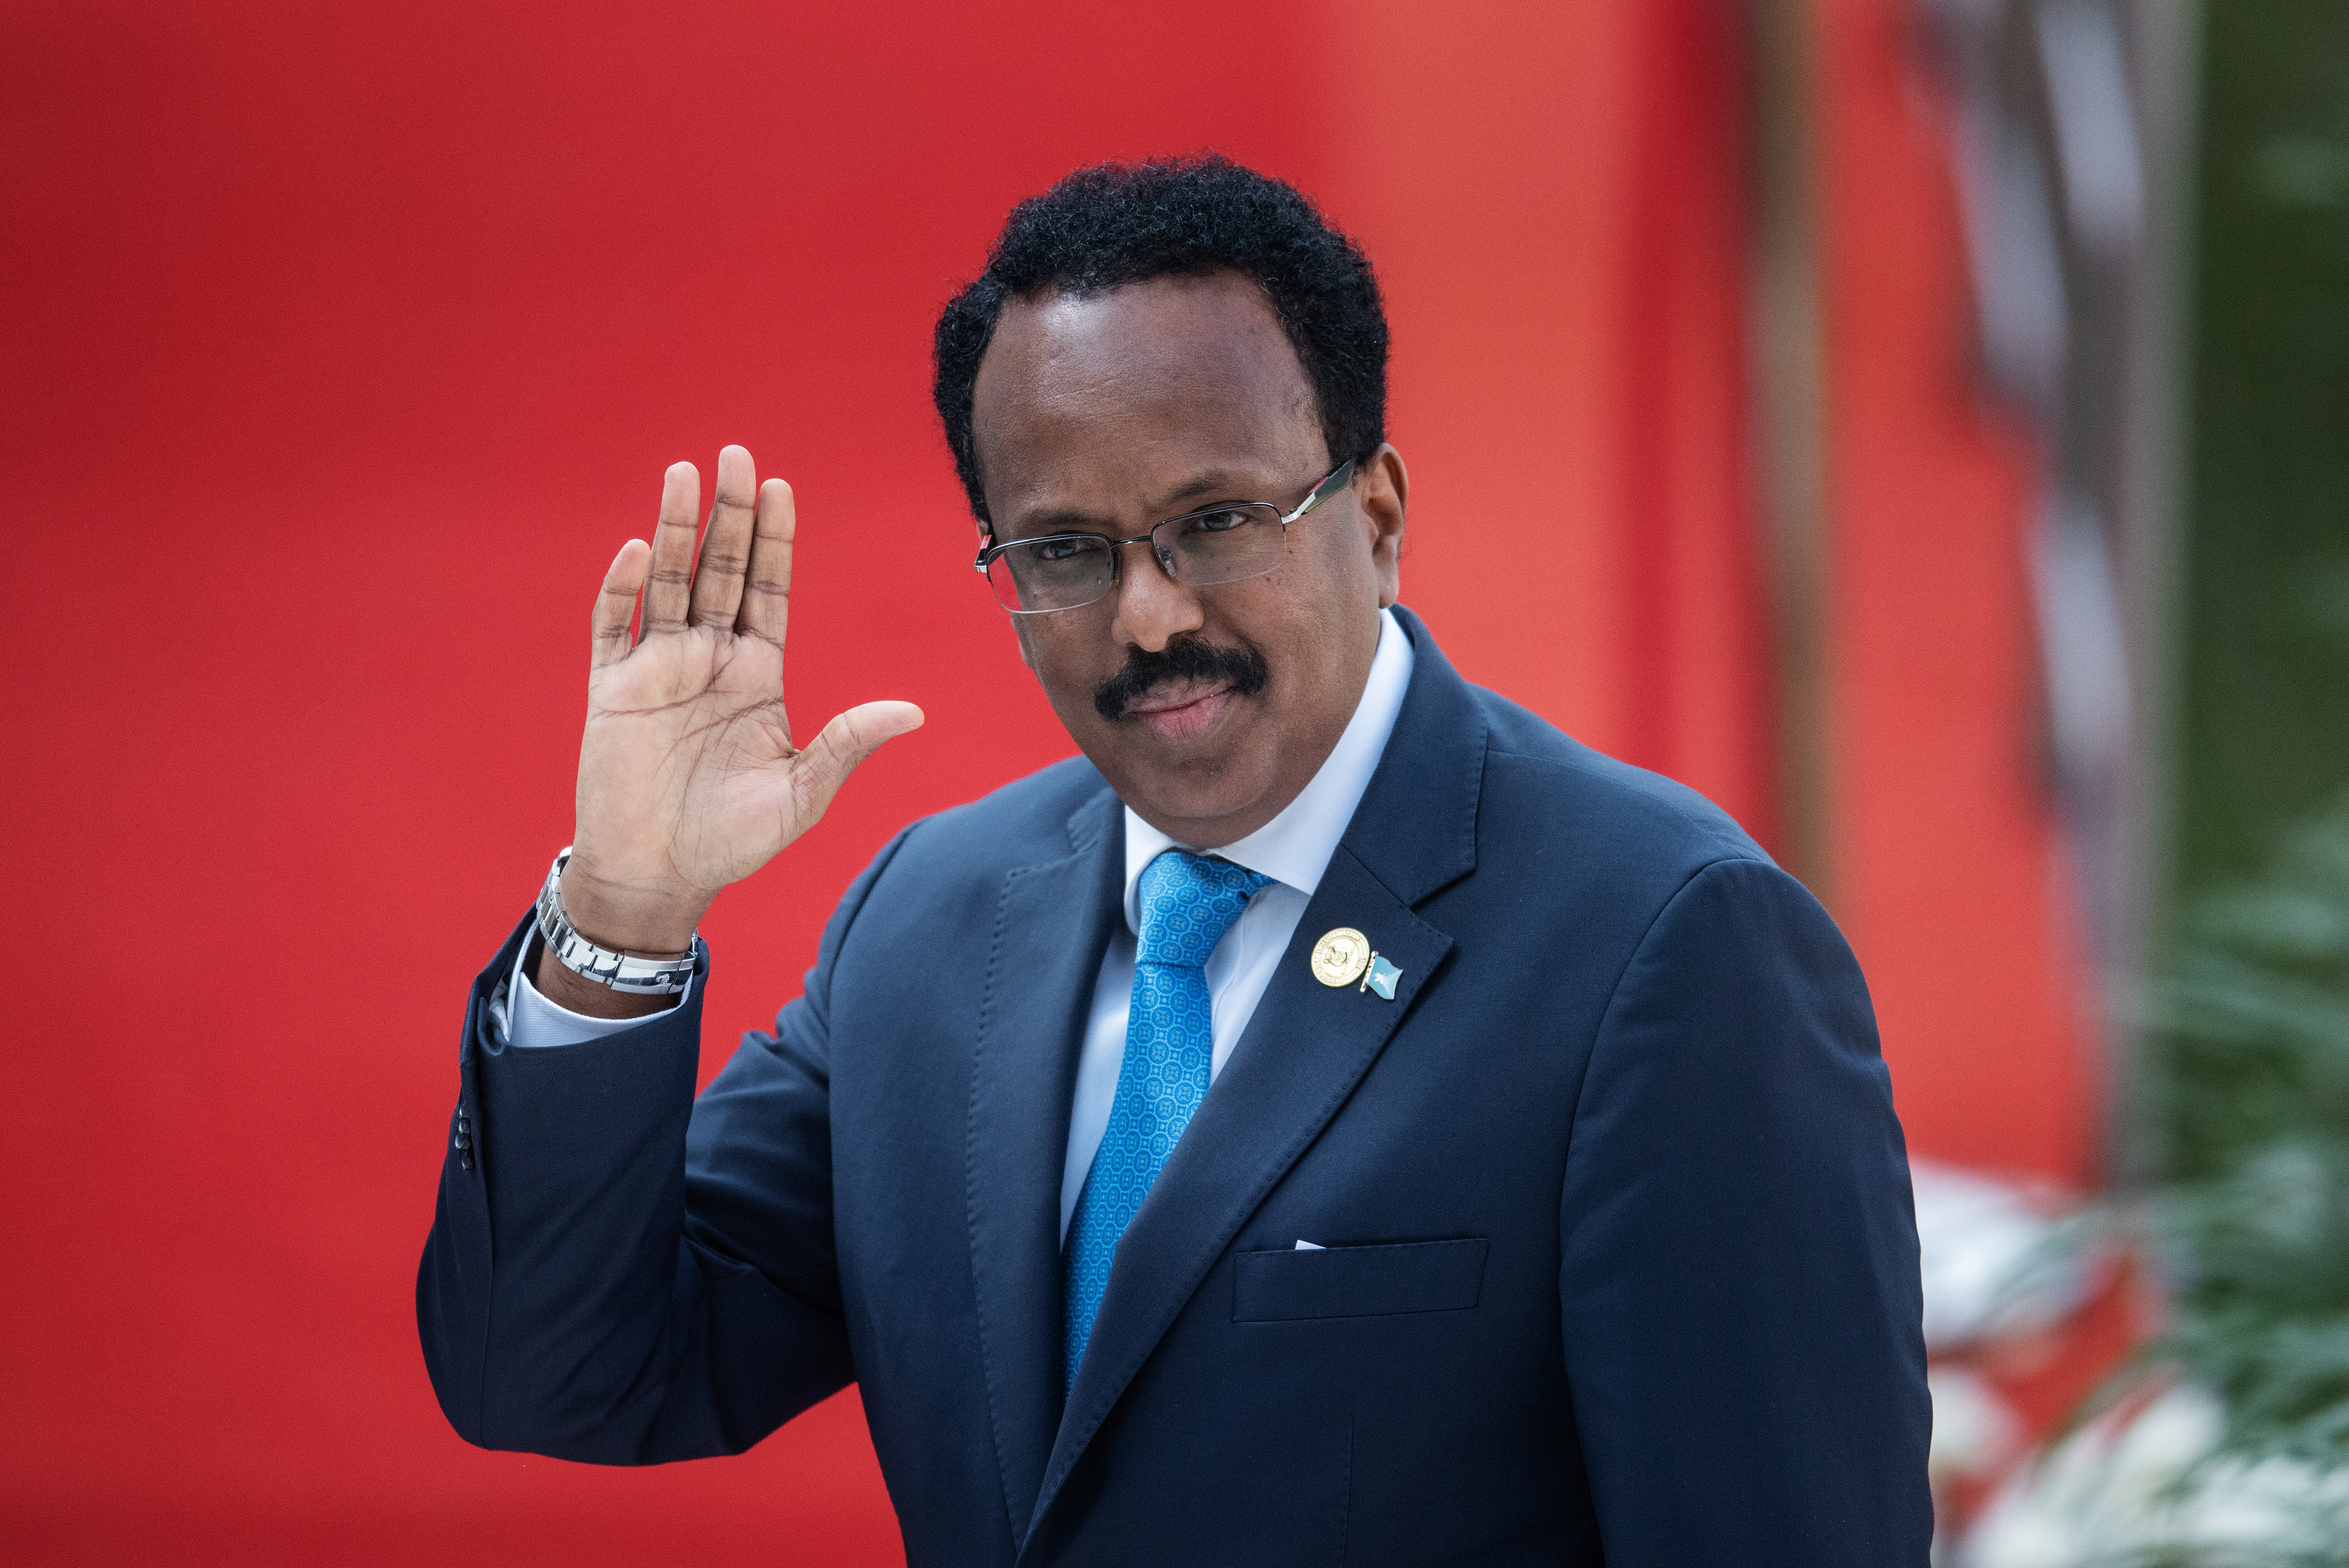 File: Somalia's President Mohamed Abdullahi Mohamed gestures while arriving at the Loftus Versfeld Stadium in Pretoria, South Africa, for the inauguration of Incumbent South African President Cyril Ramaphosa on May 25, 2019.